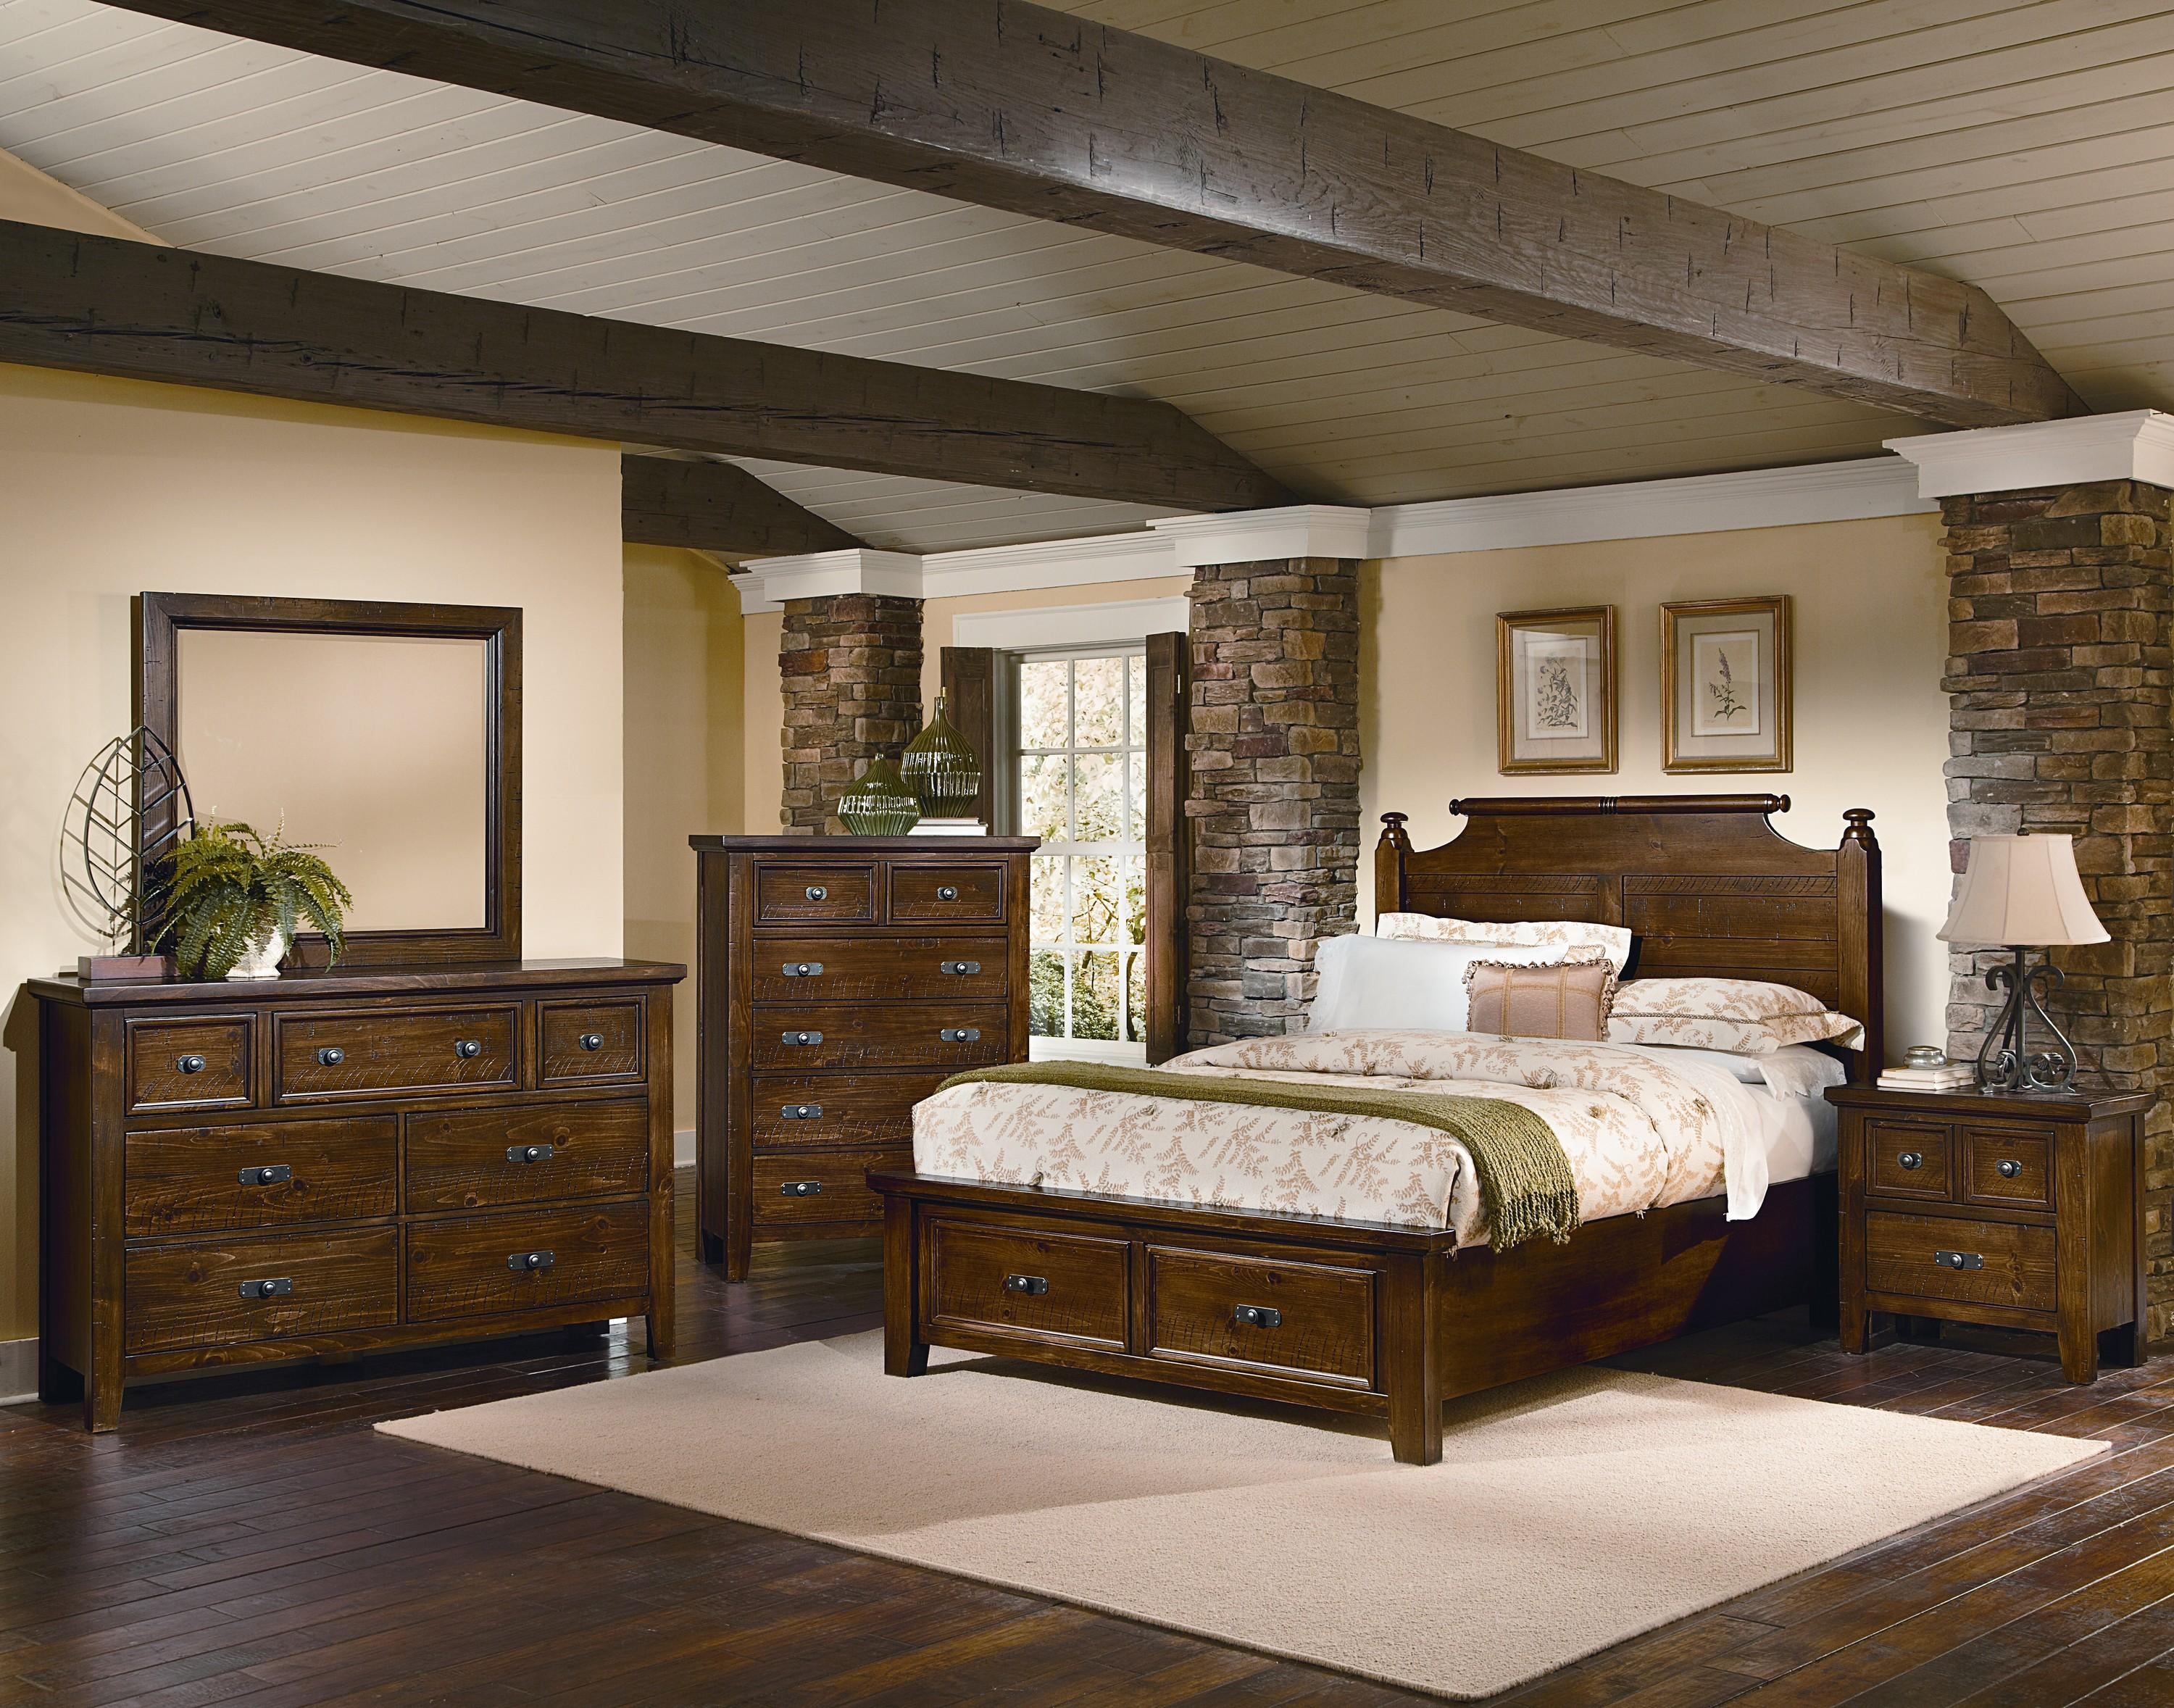 Vaughan Bassett Timber Mill King Bedroom Group - Item Number: BB58 K Bedroom Group 4